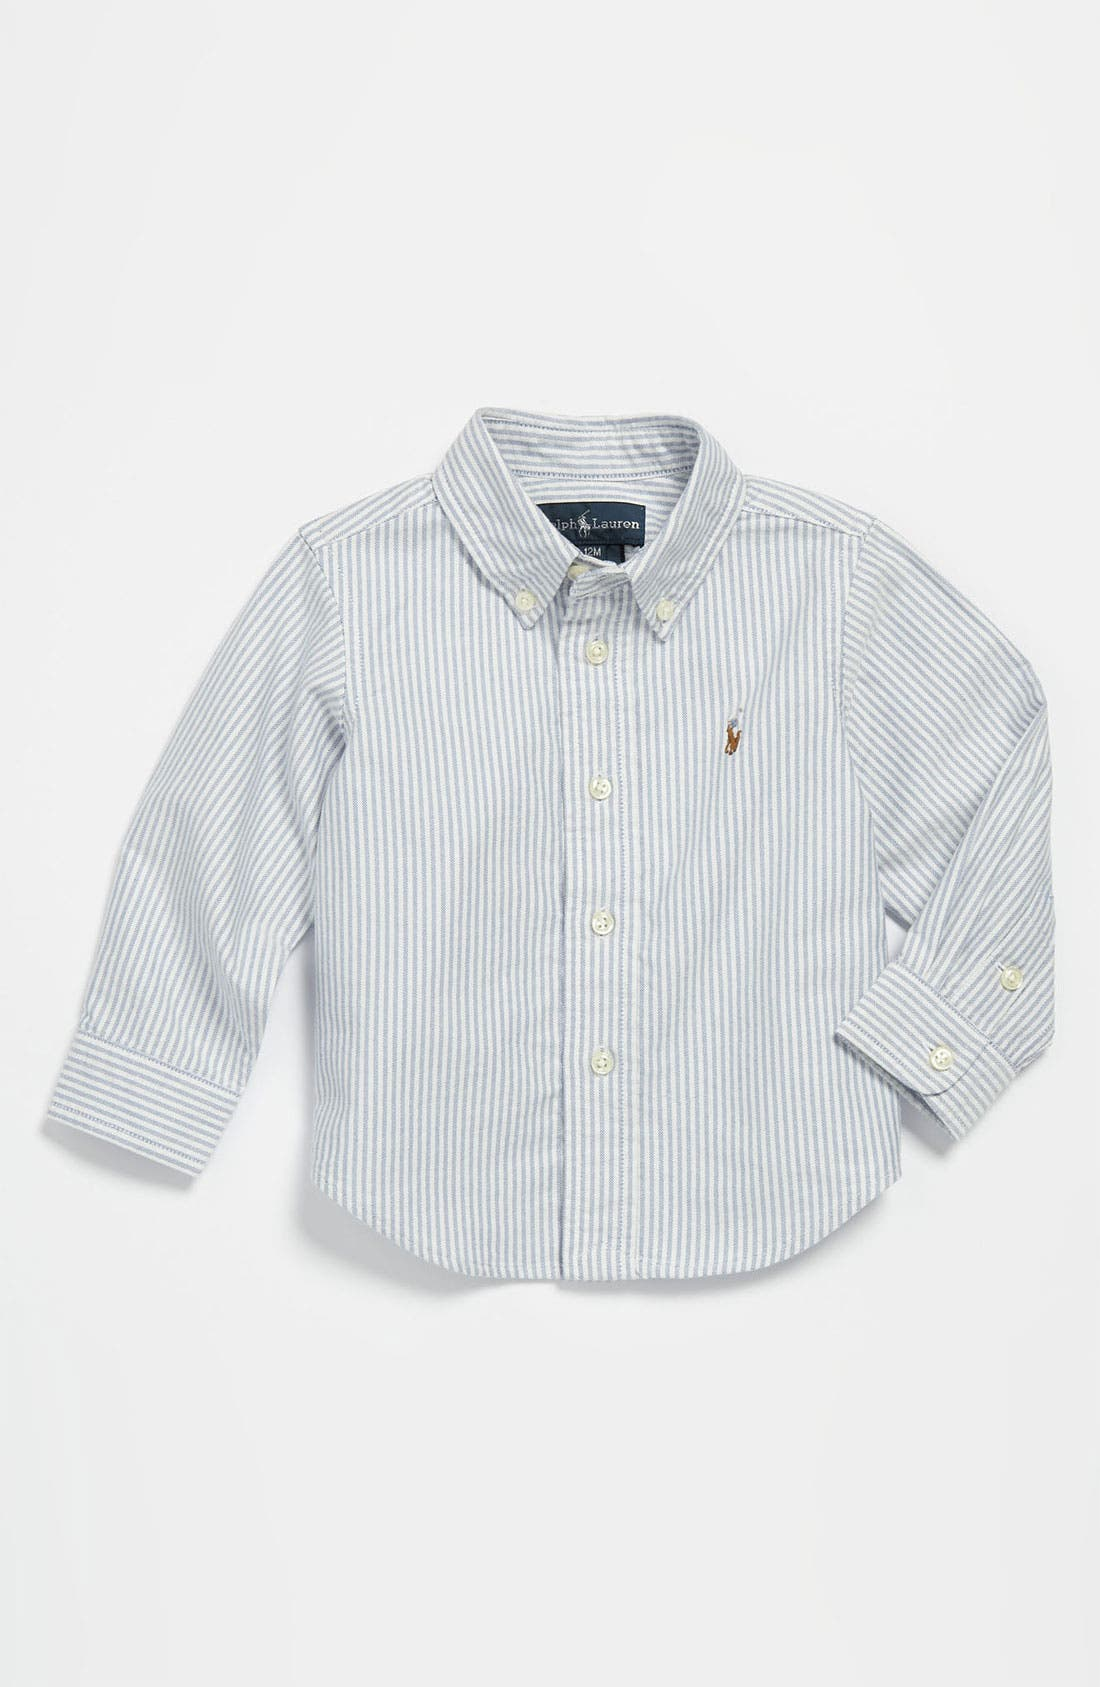 Alternate Image 1 Selected - Ralph Lauren Woven Shirt (Baby)